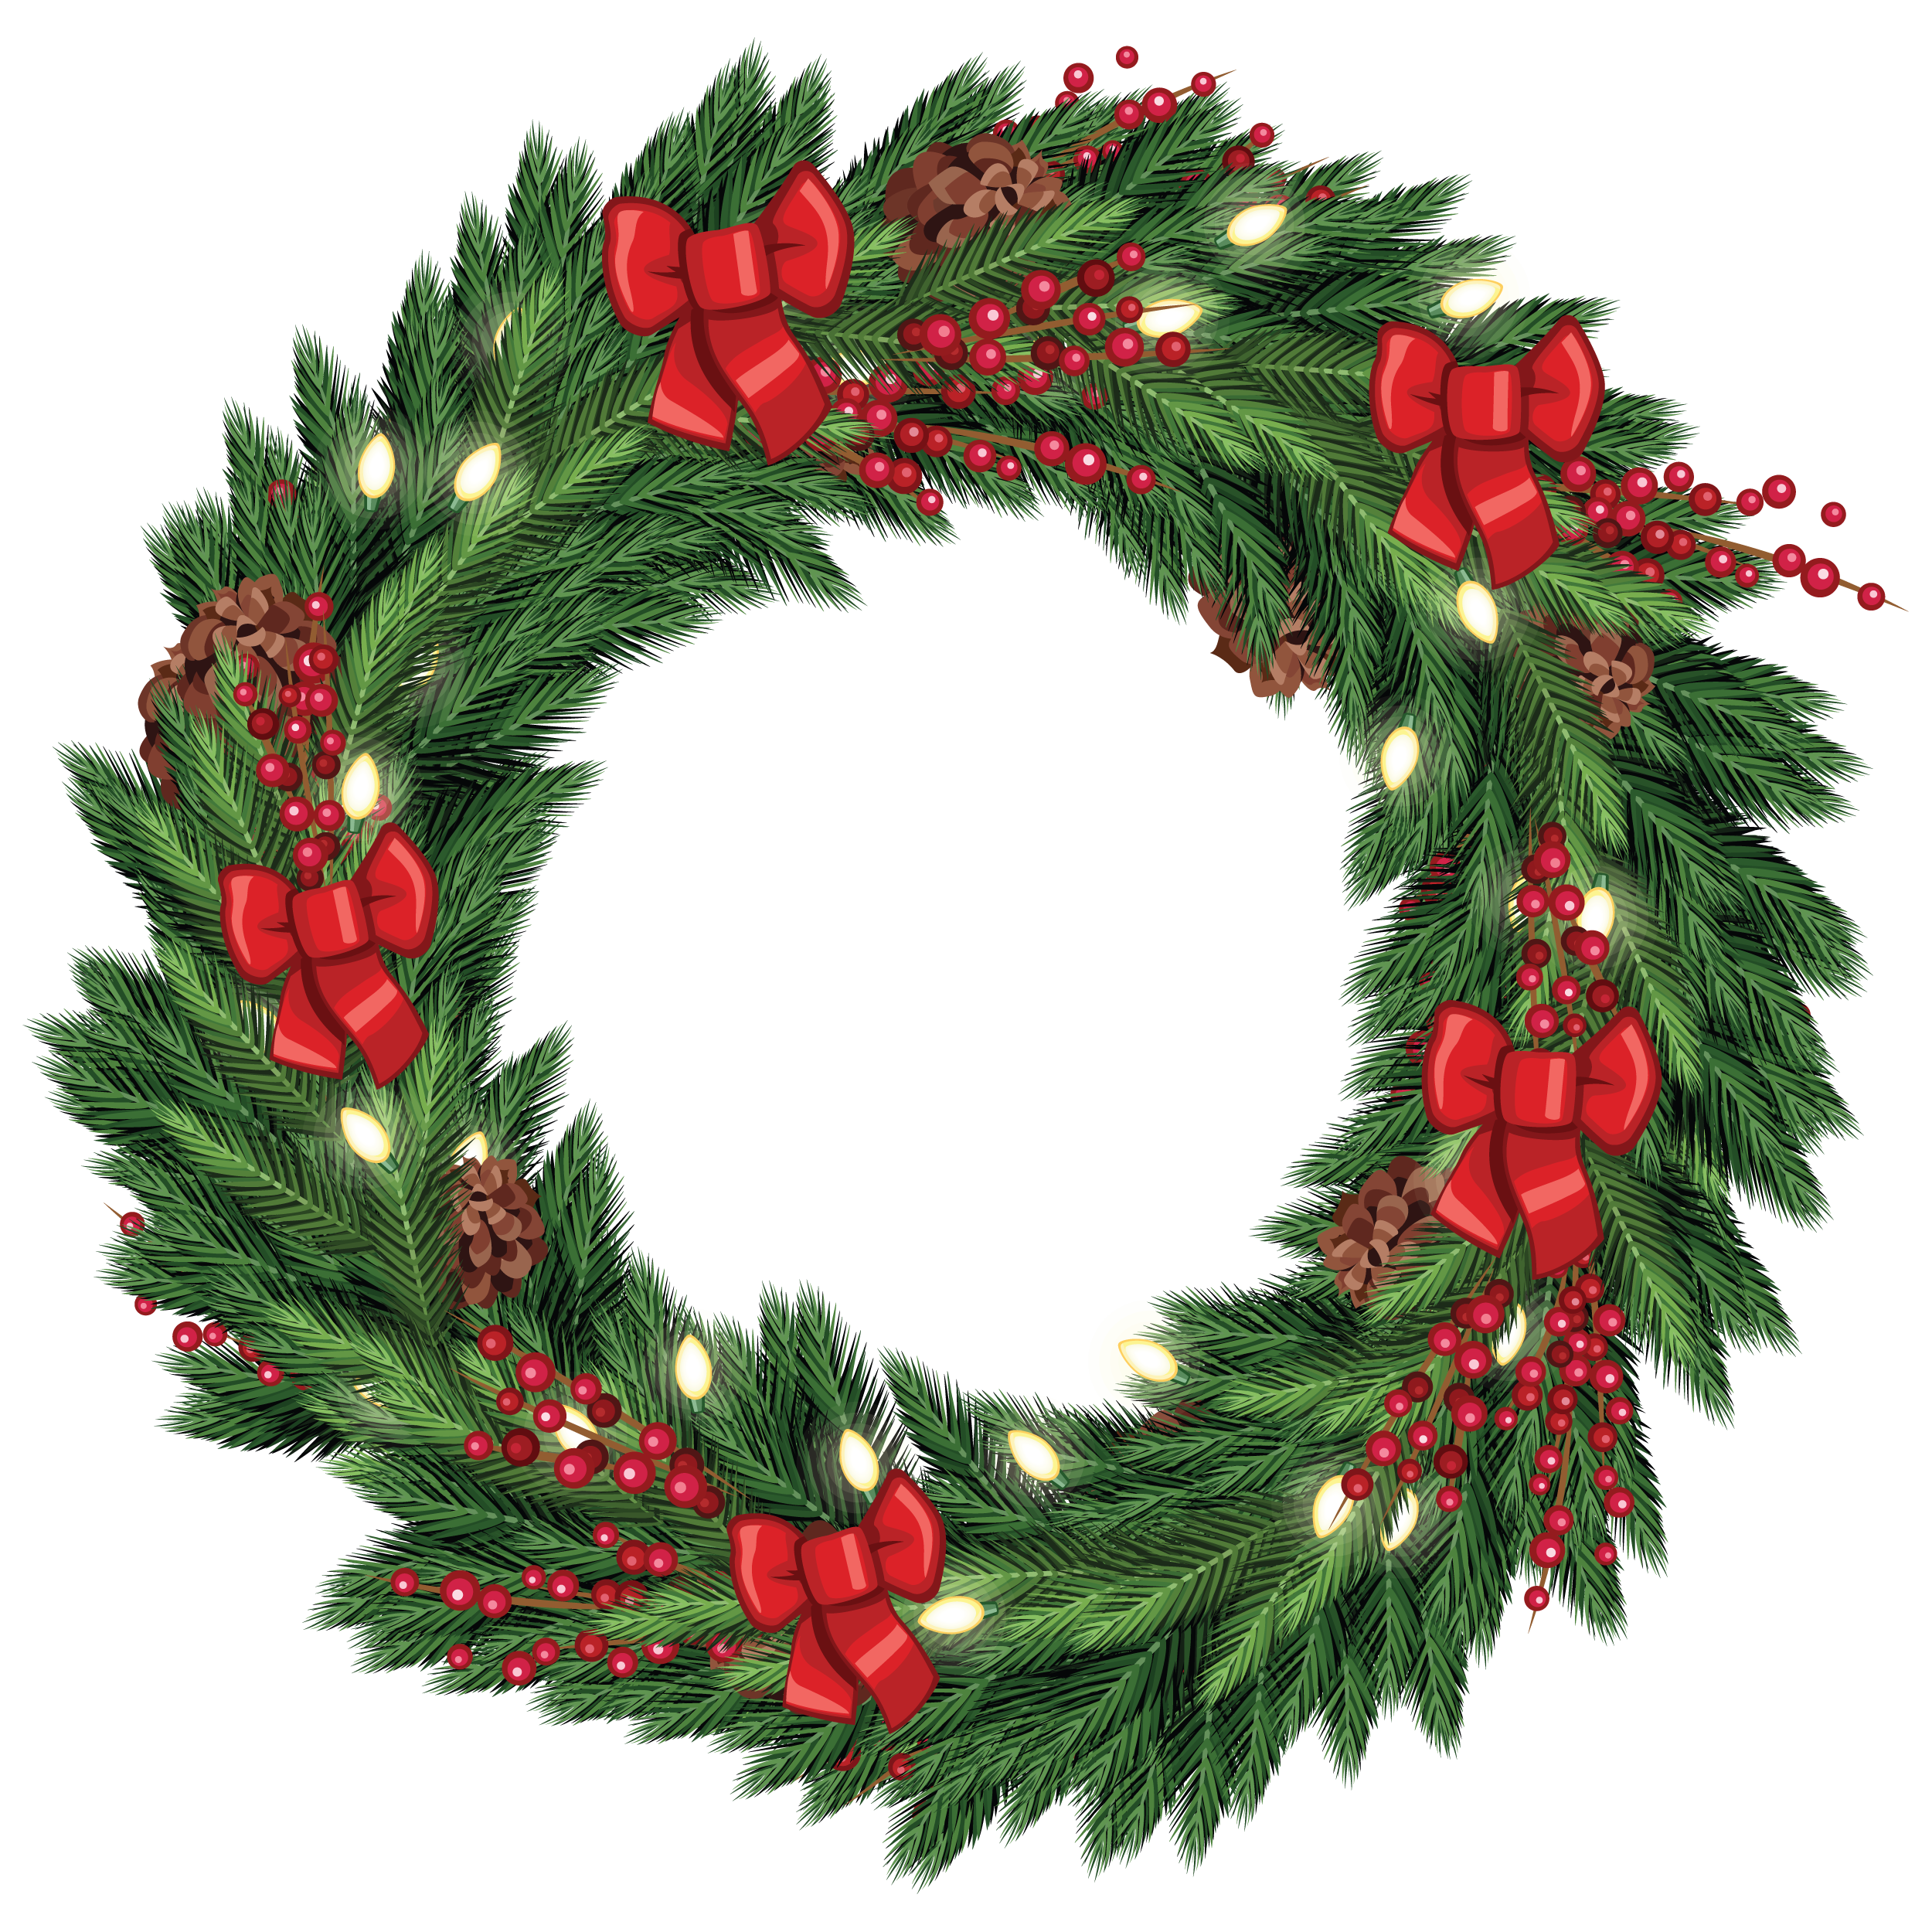 Free Christmas Wreath Graphic from TradigitalArt